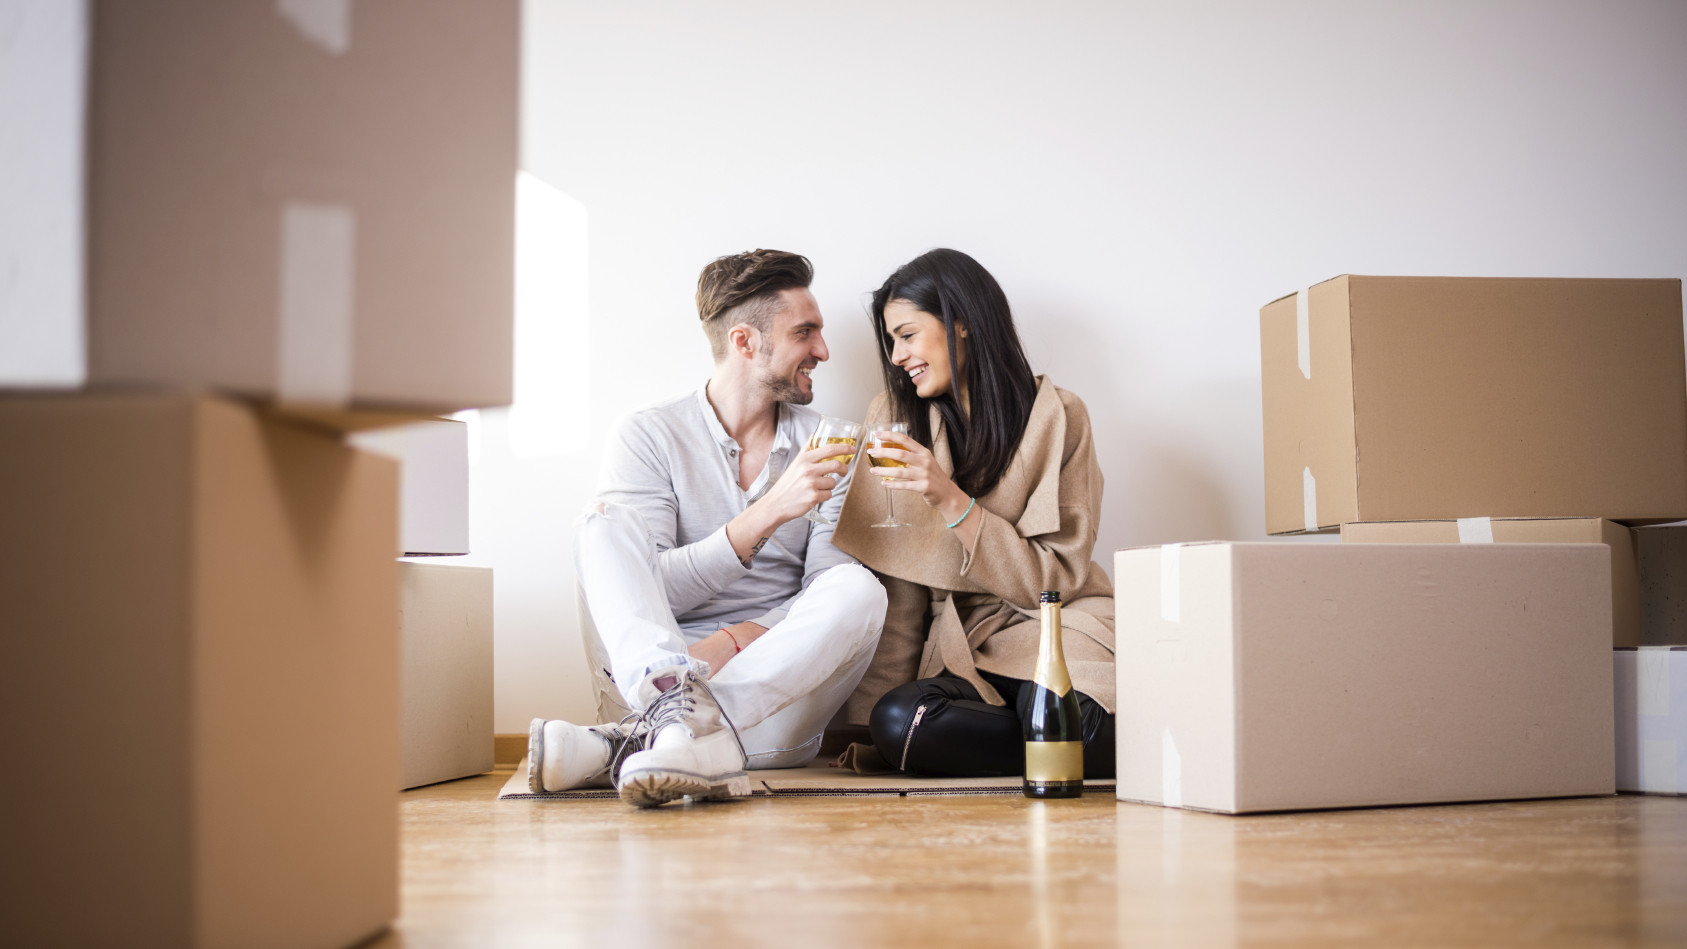 How Long Should You Be Dating Before Moving In Together